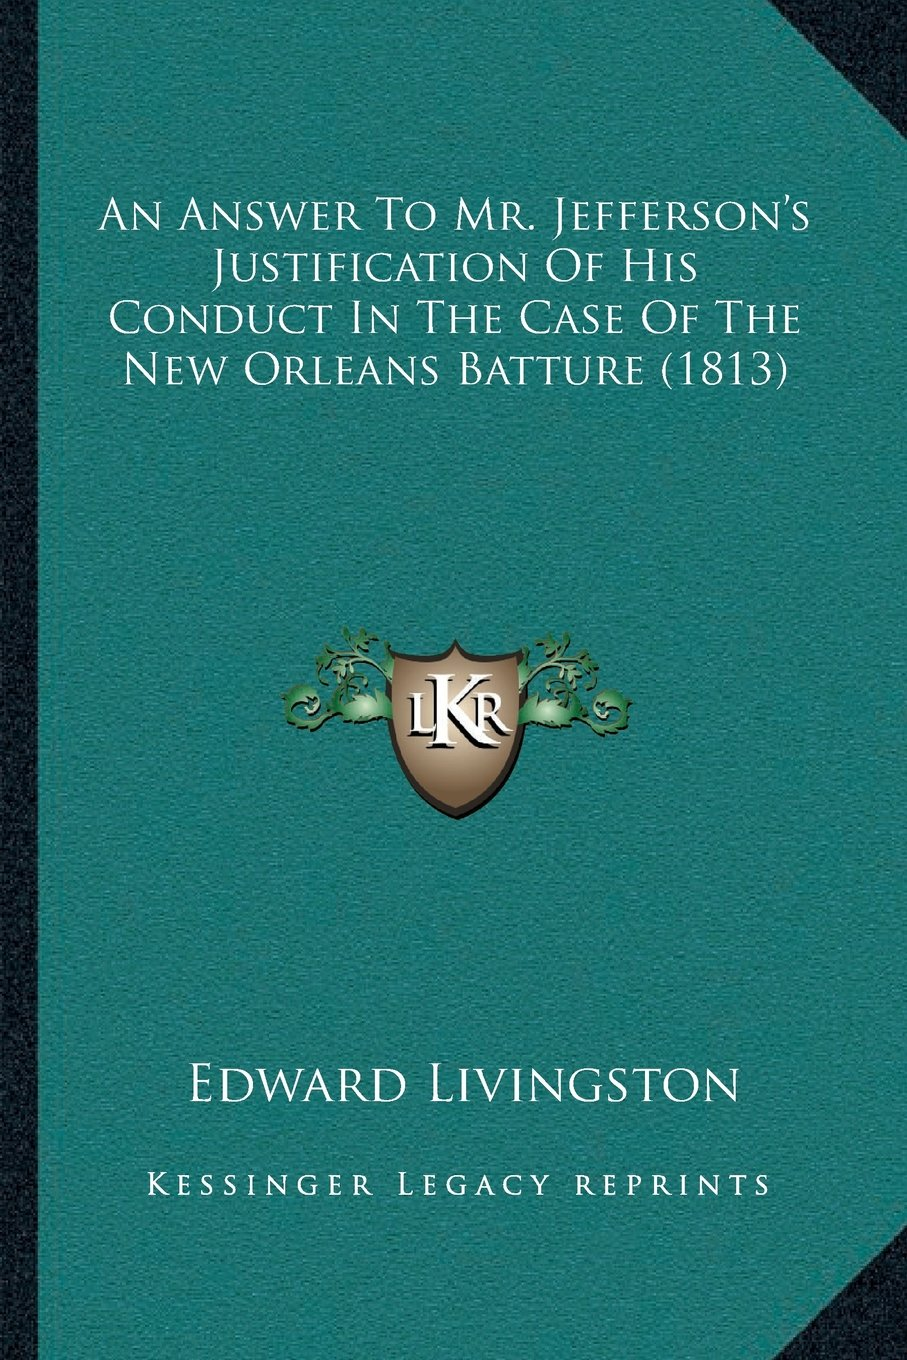 Download An Answer To Mr. Jefferson's Justification Of His Conduct In The Case Of The New Orleans Batture (1813) pdf